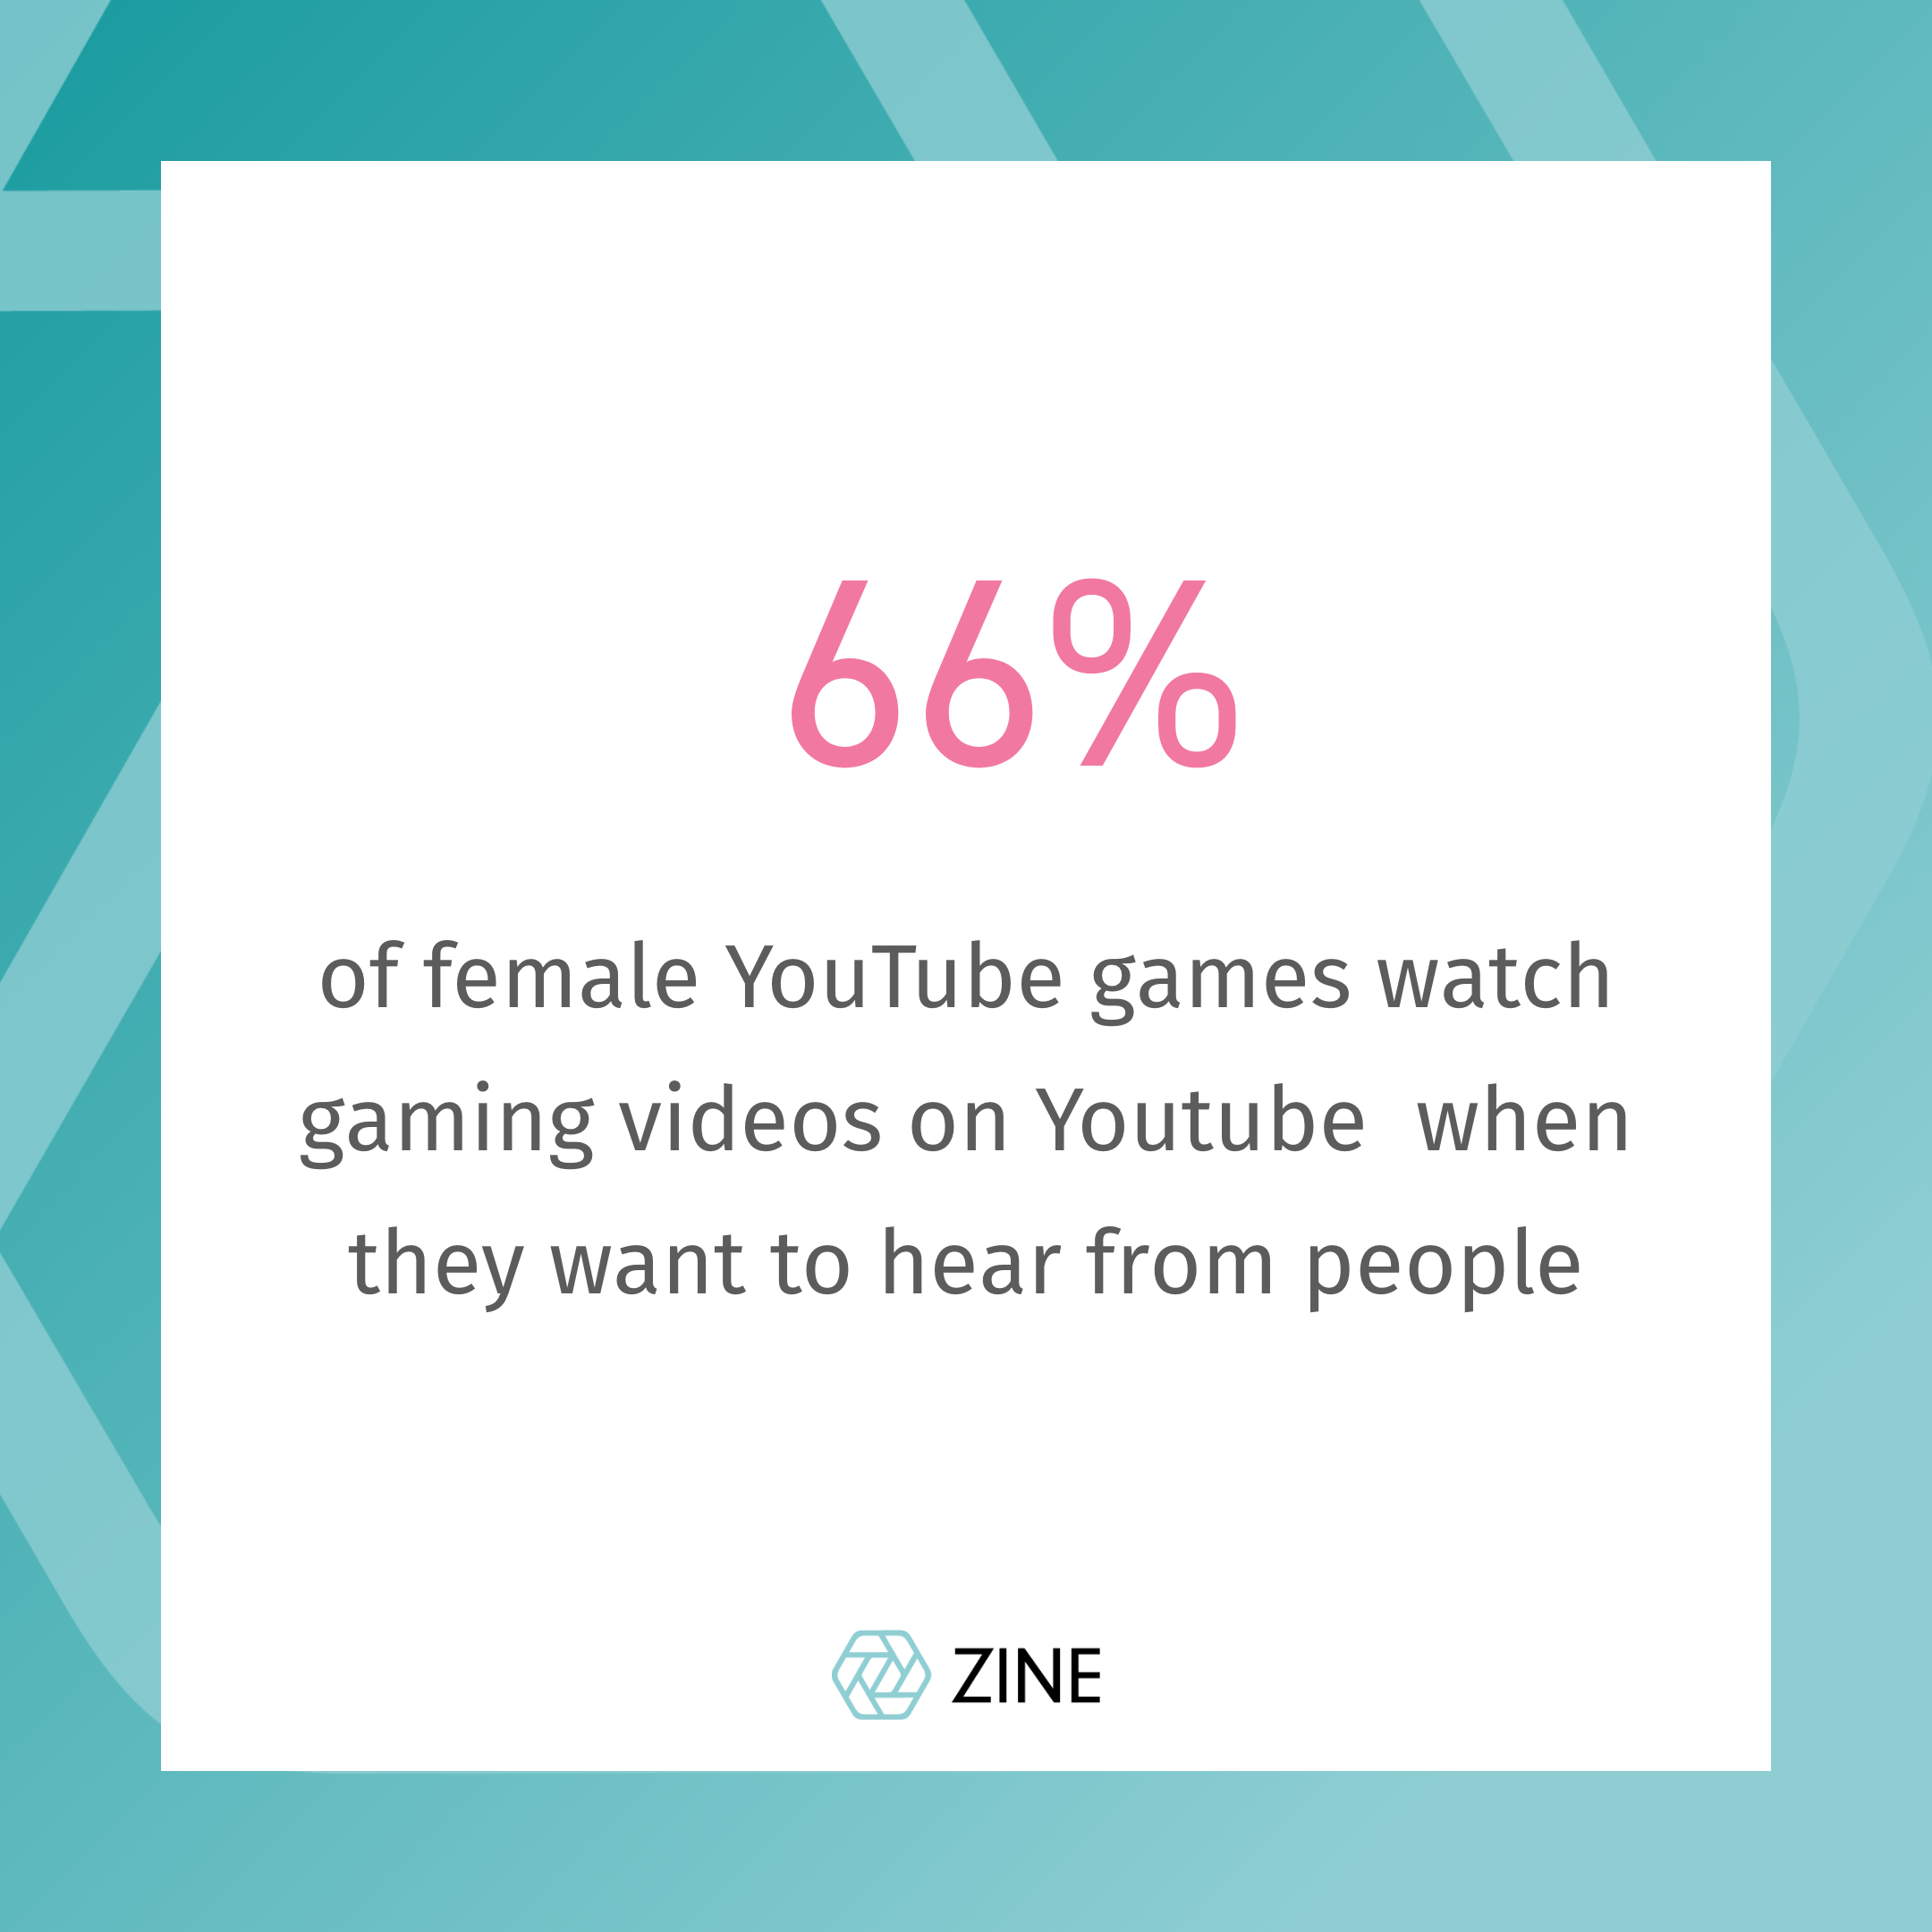 female youtube gaming statistics